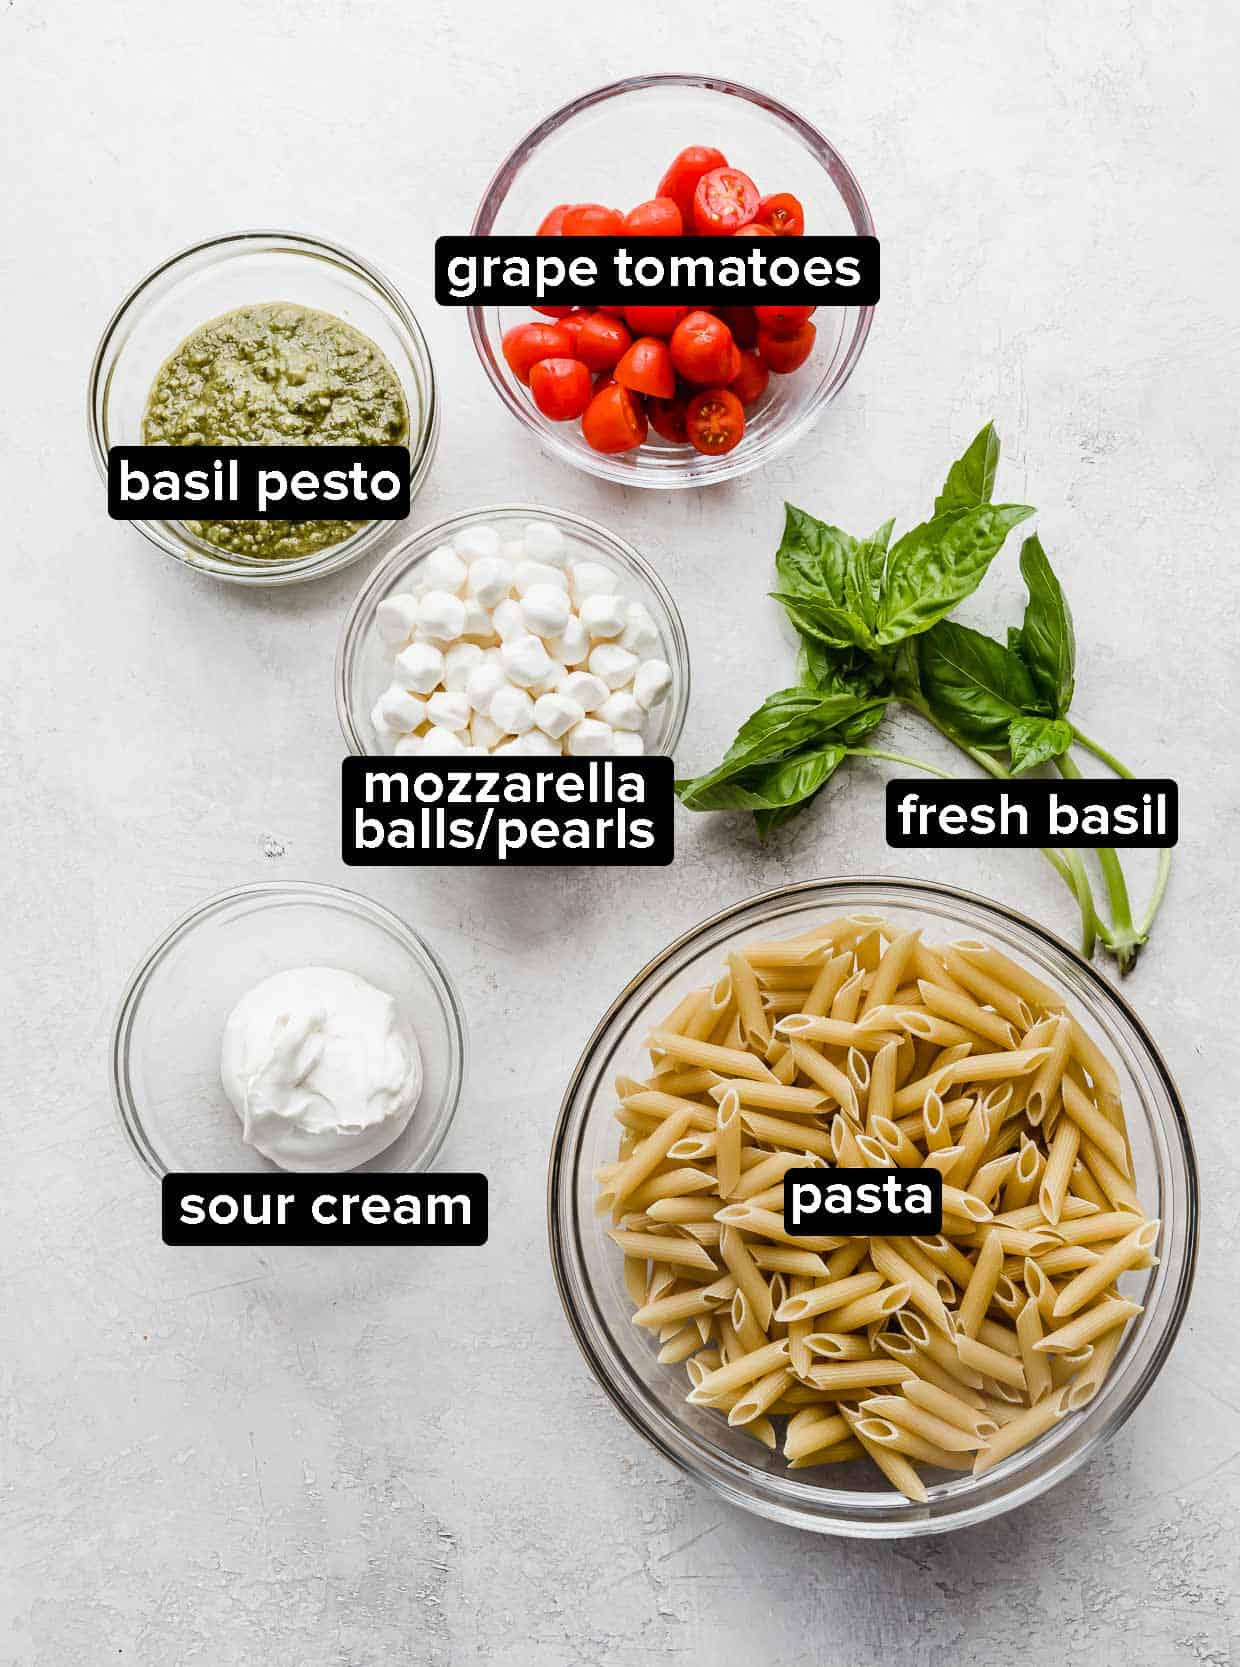 Ingredients used to make pesto pasta with tomatoes.